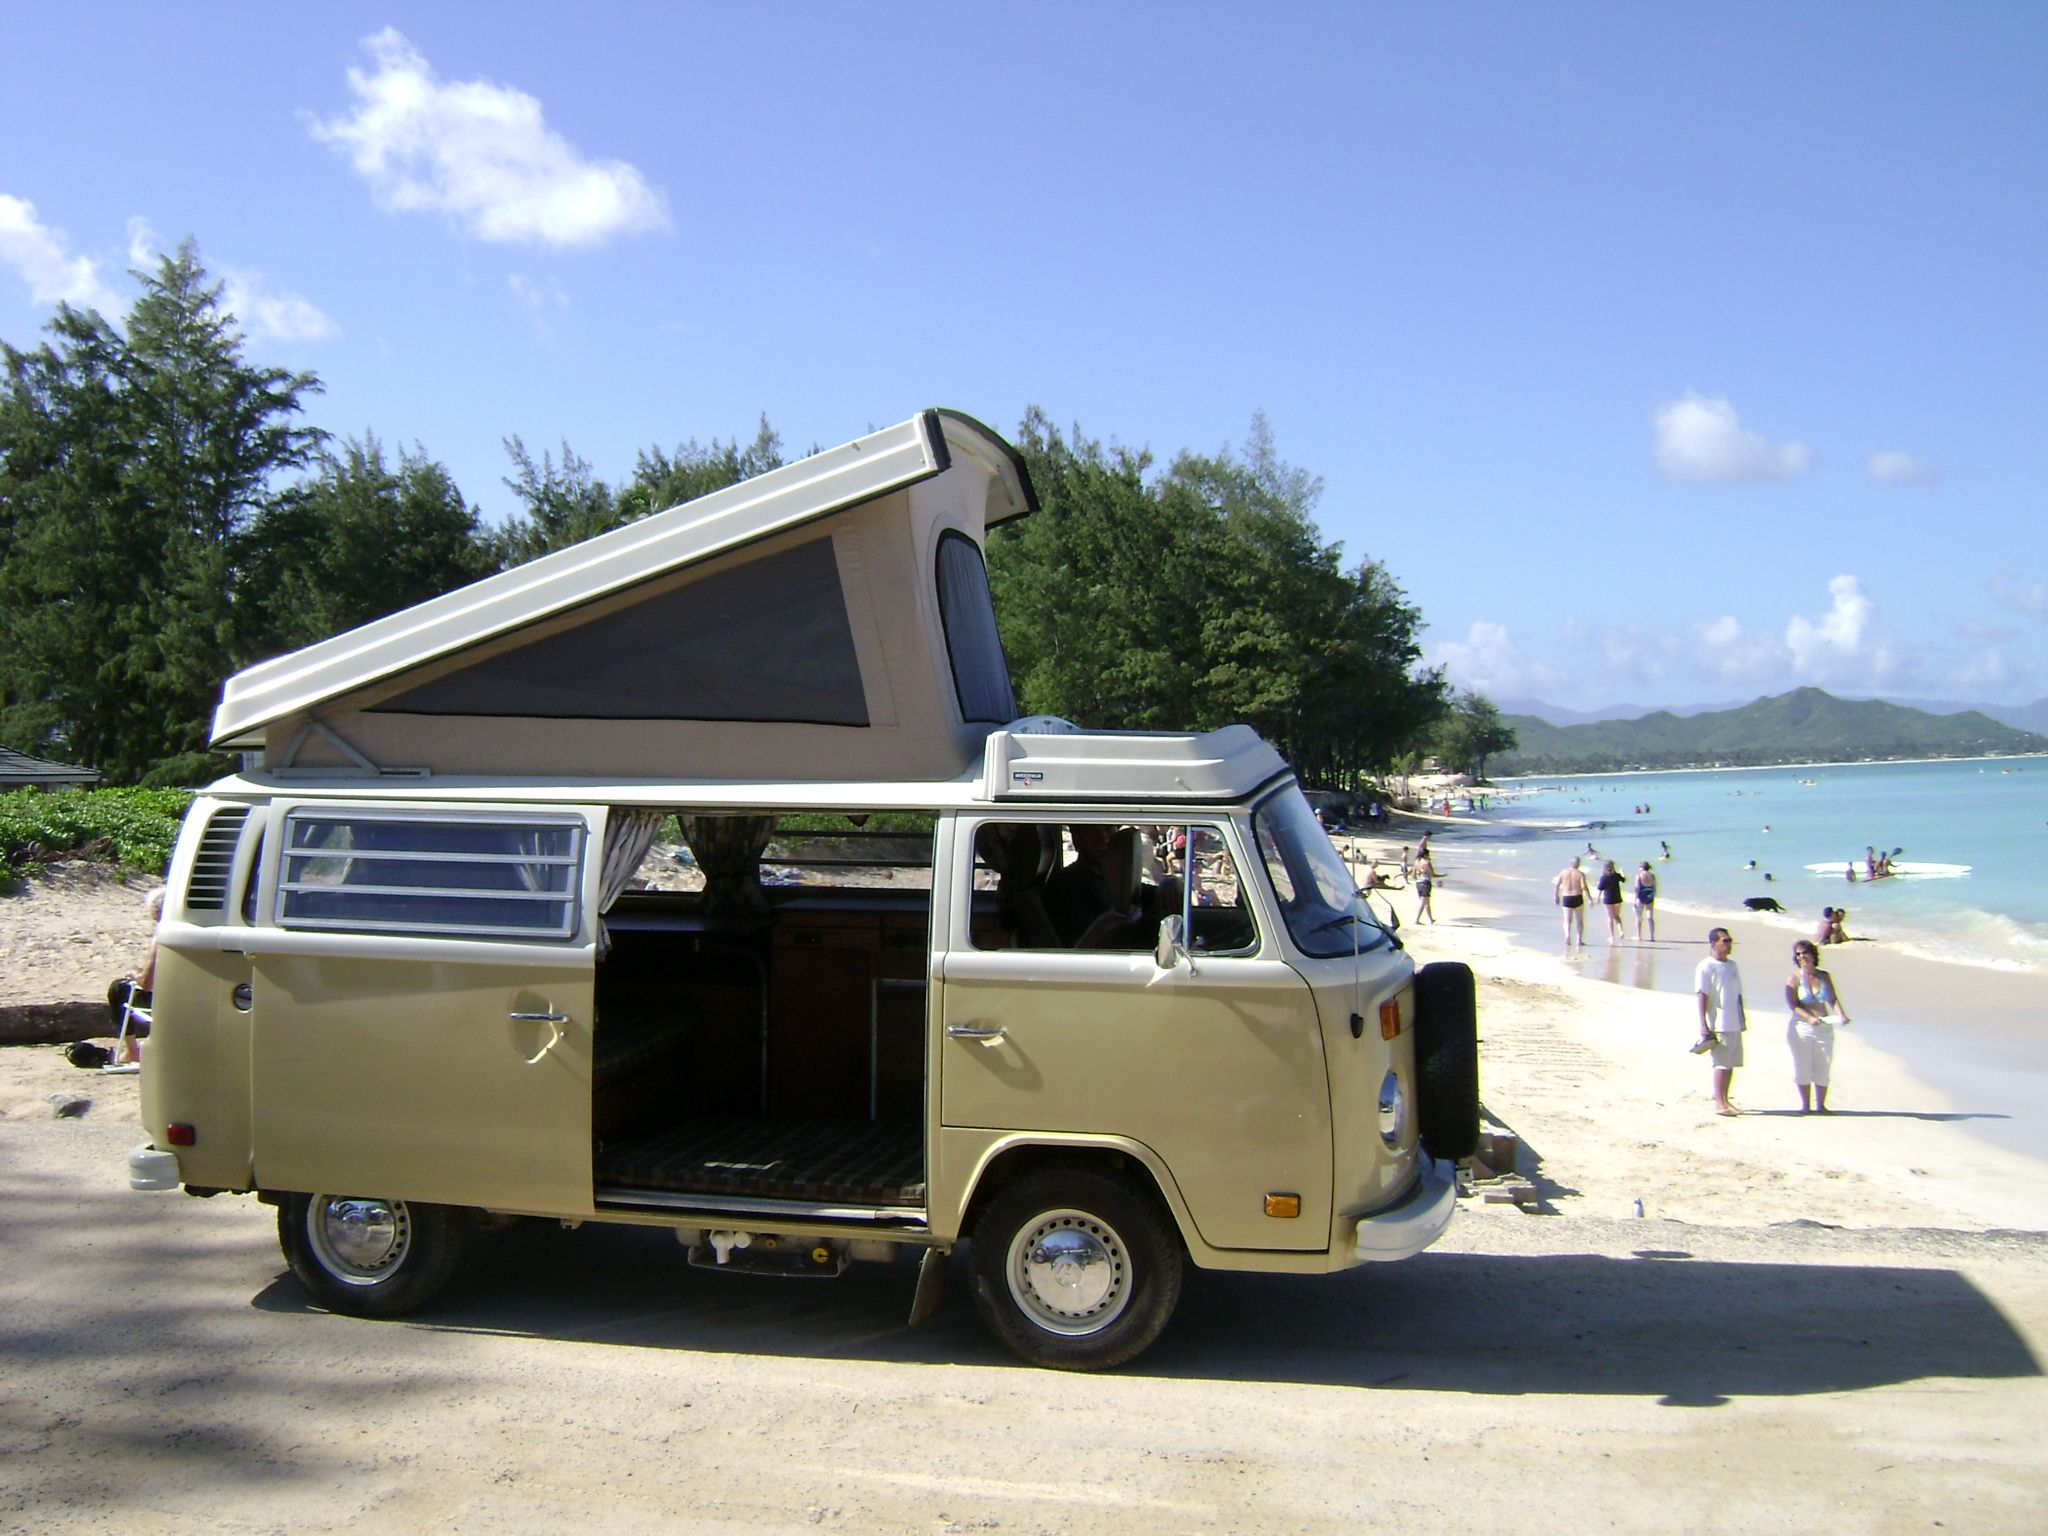 oahu camping vans rent one and explore oahu 39 s coast in style consumer pinterest oahu. Black Bedroom Furniture Sets. Home Design Ideas